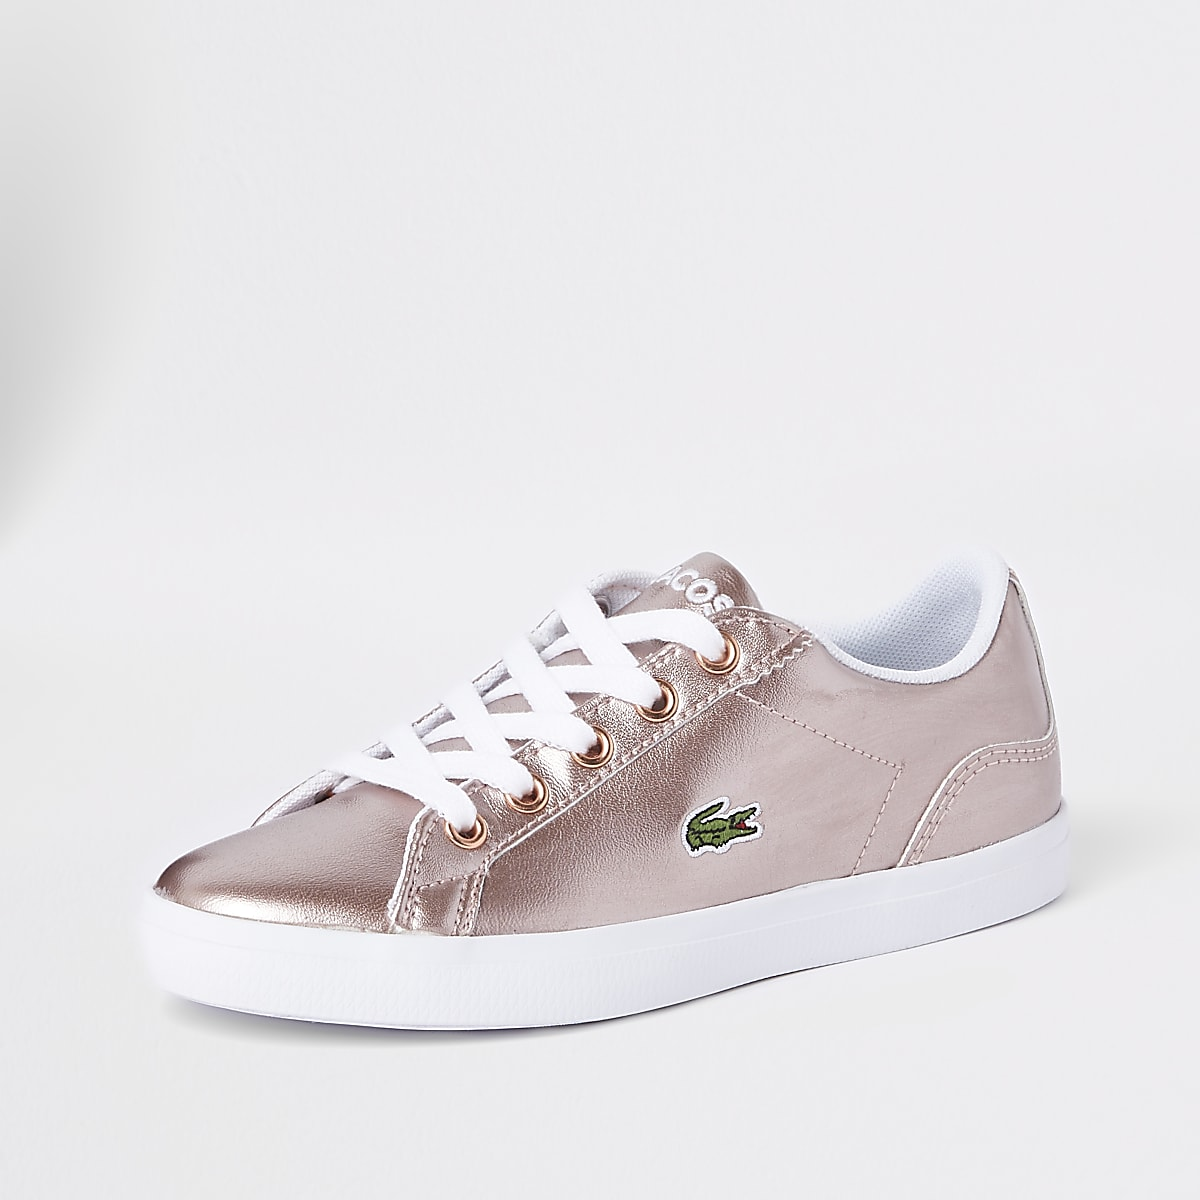 069721c951 Girls Lacoste pink lace up trainers